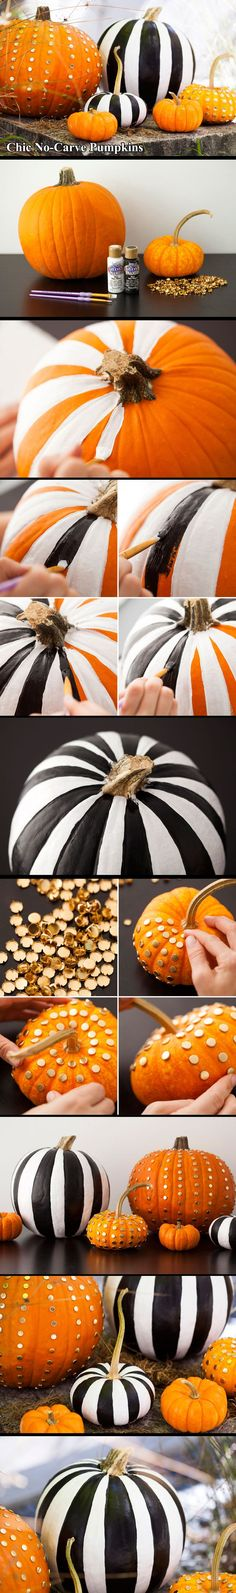 DIY: 2 Ways to Make Chic No-Carve Pumpkins via Brit + Co. Halloween with Tim Burton ~~ Halloween Party Decorations & Ideas                                                                                                                                                                                 More